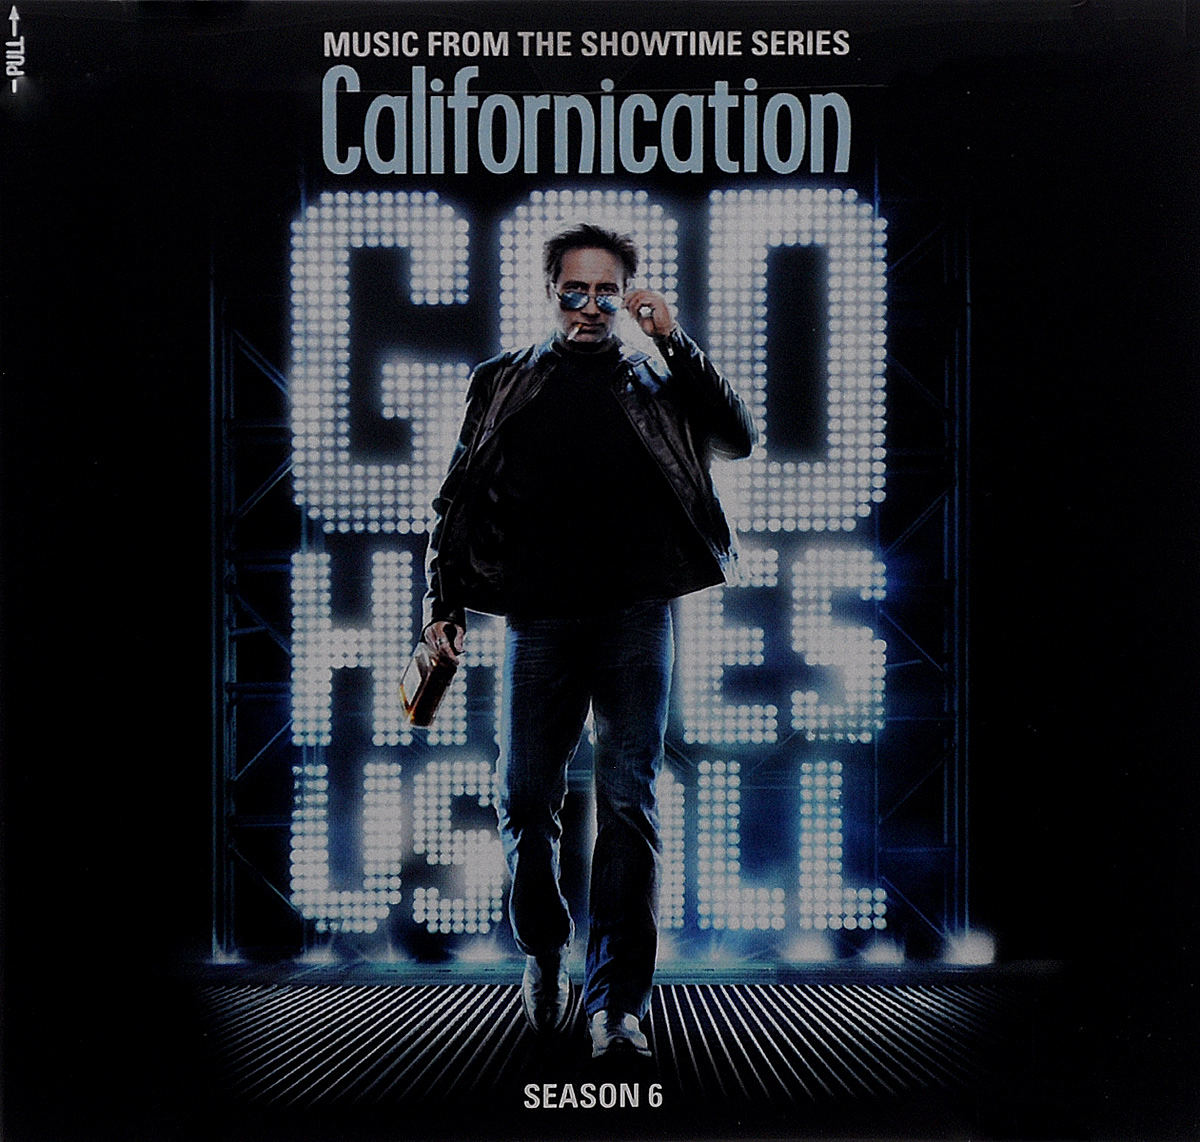 Californication. Season 6. Music From The Showtime Series. Original Soundtrack